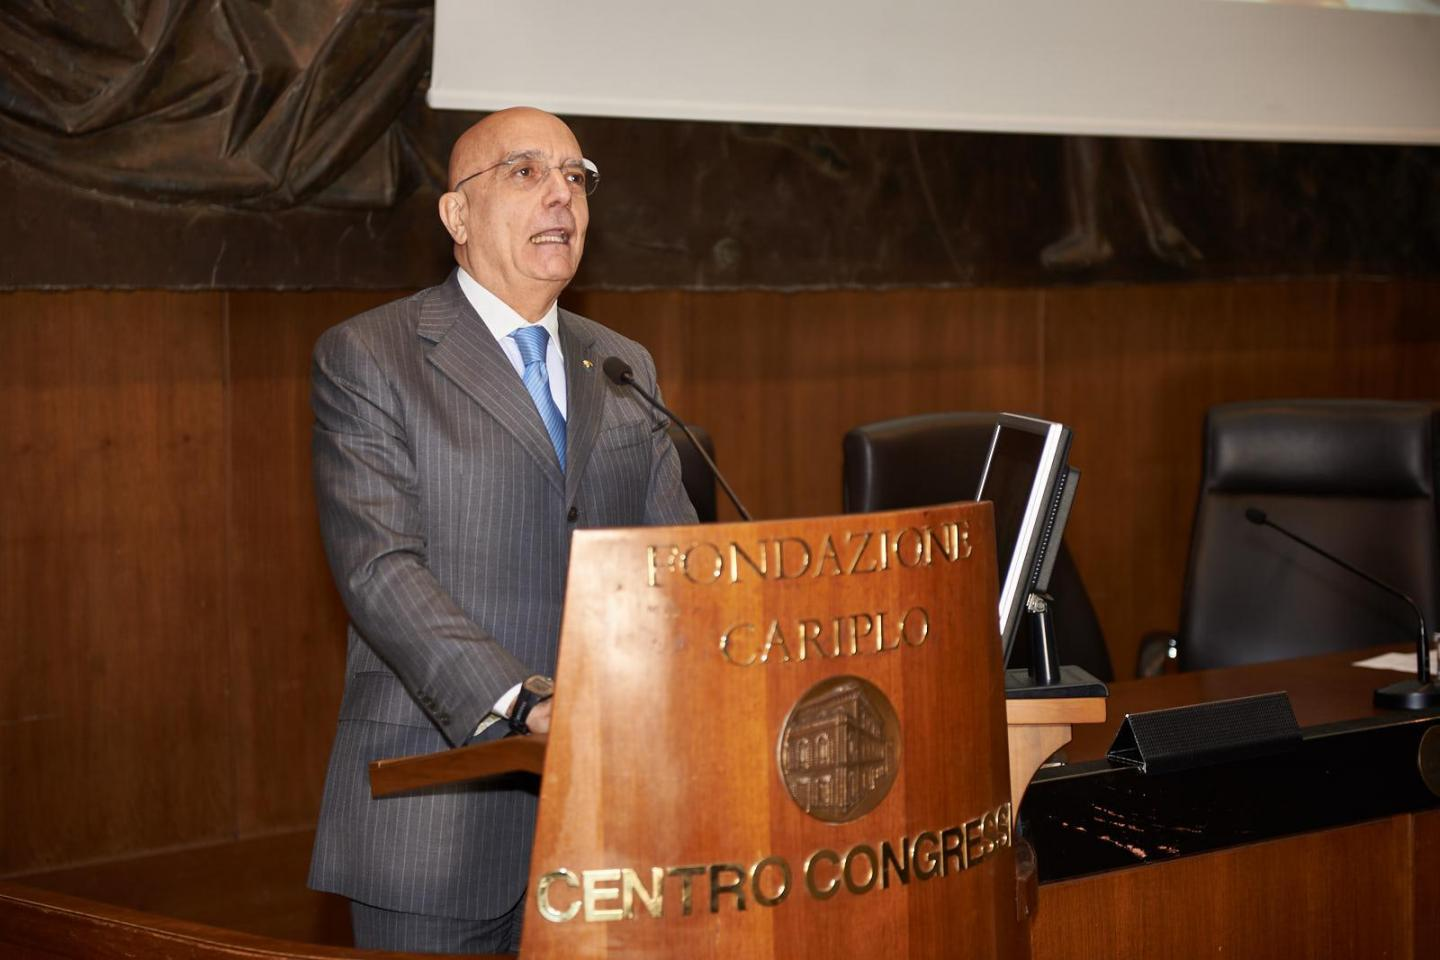 The speech of Senator Gabriele Albertini